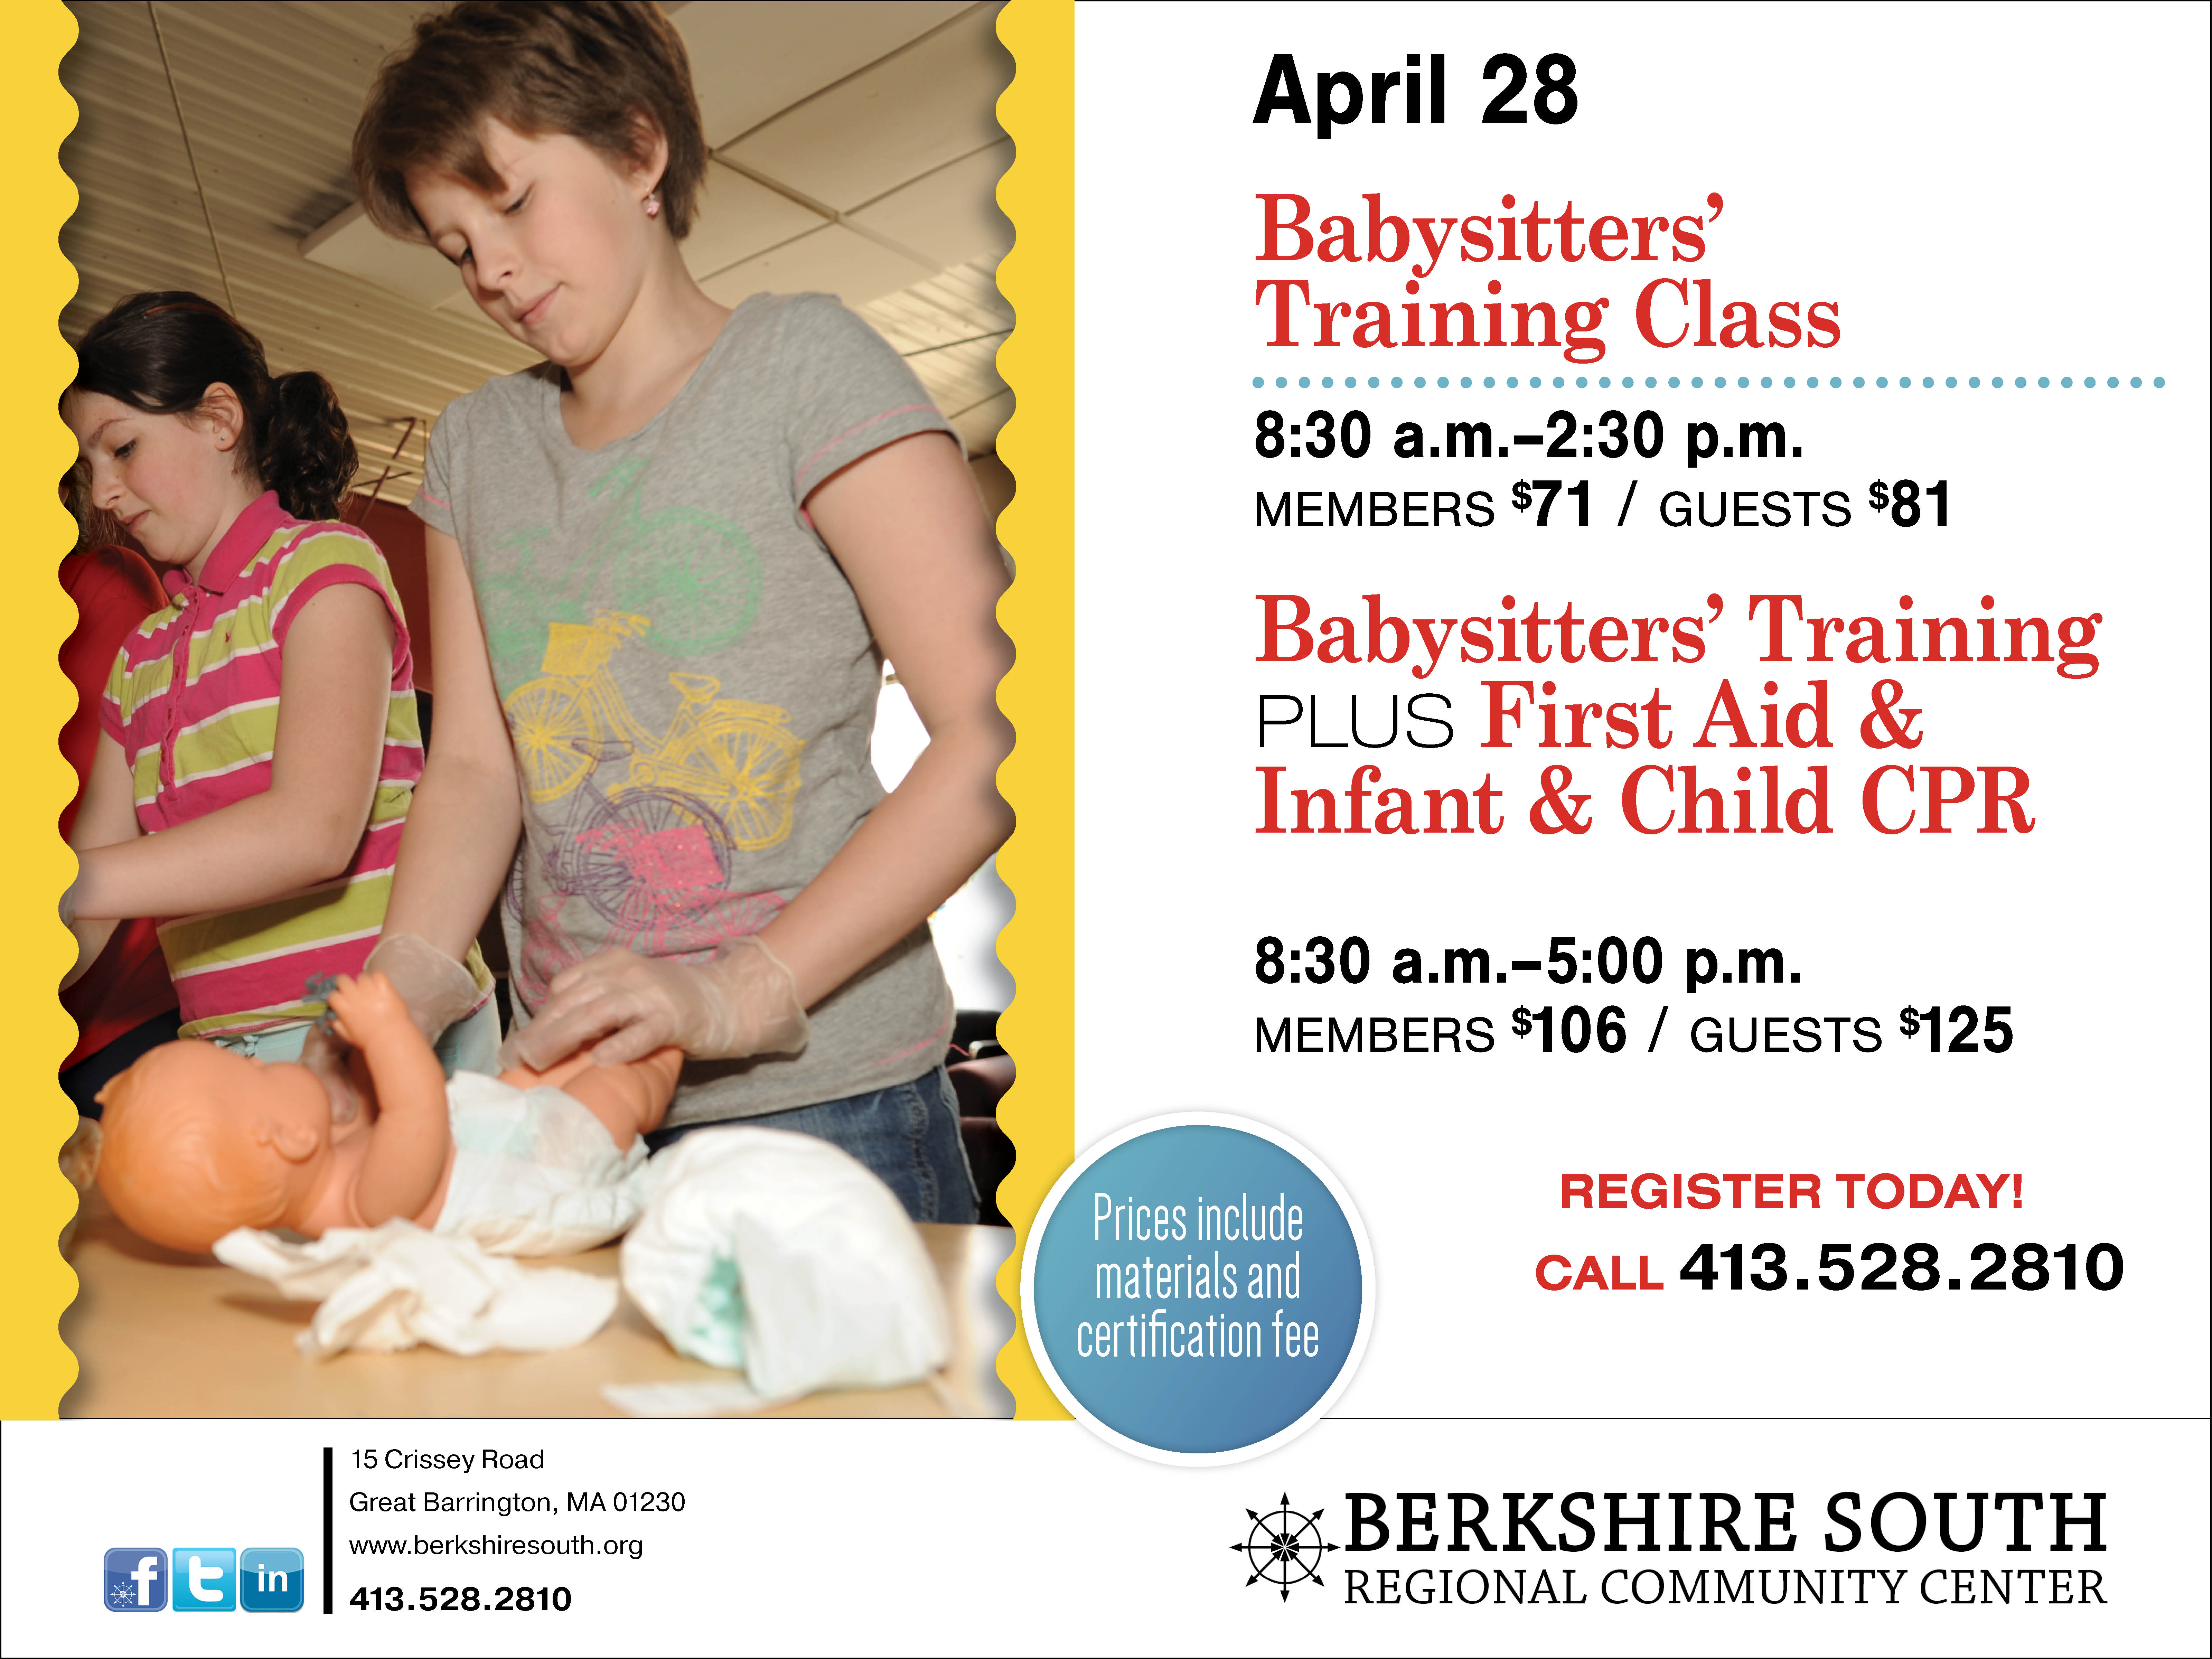 American Red Cross Babysitters' Training Class